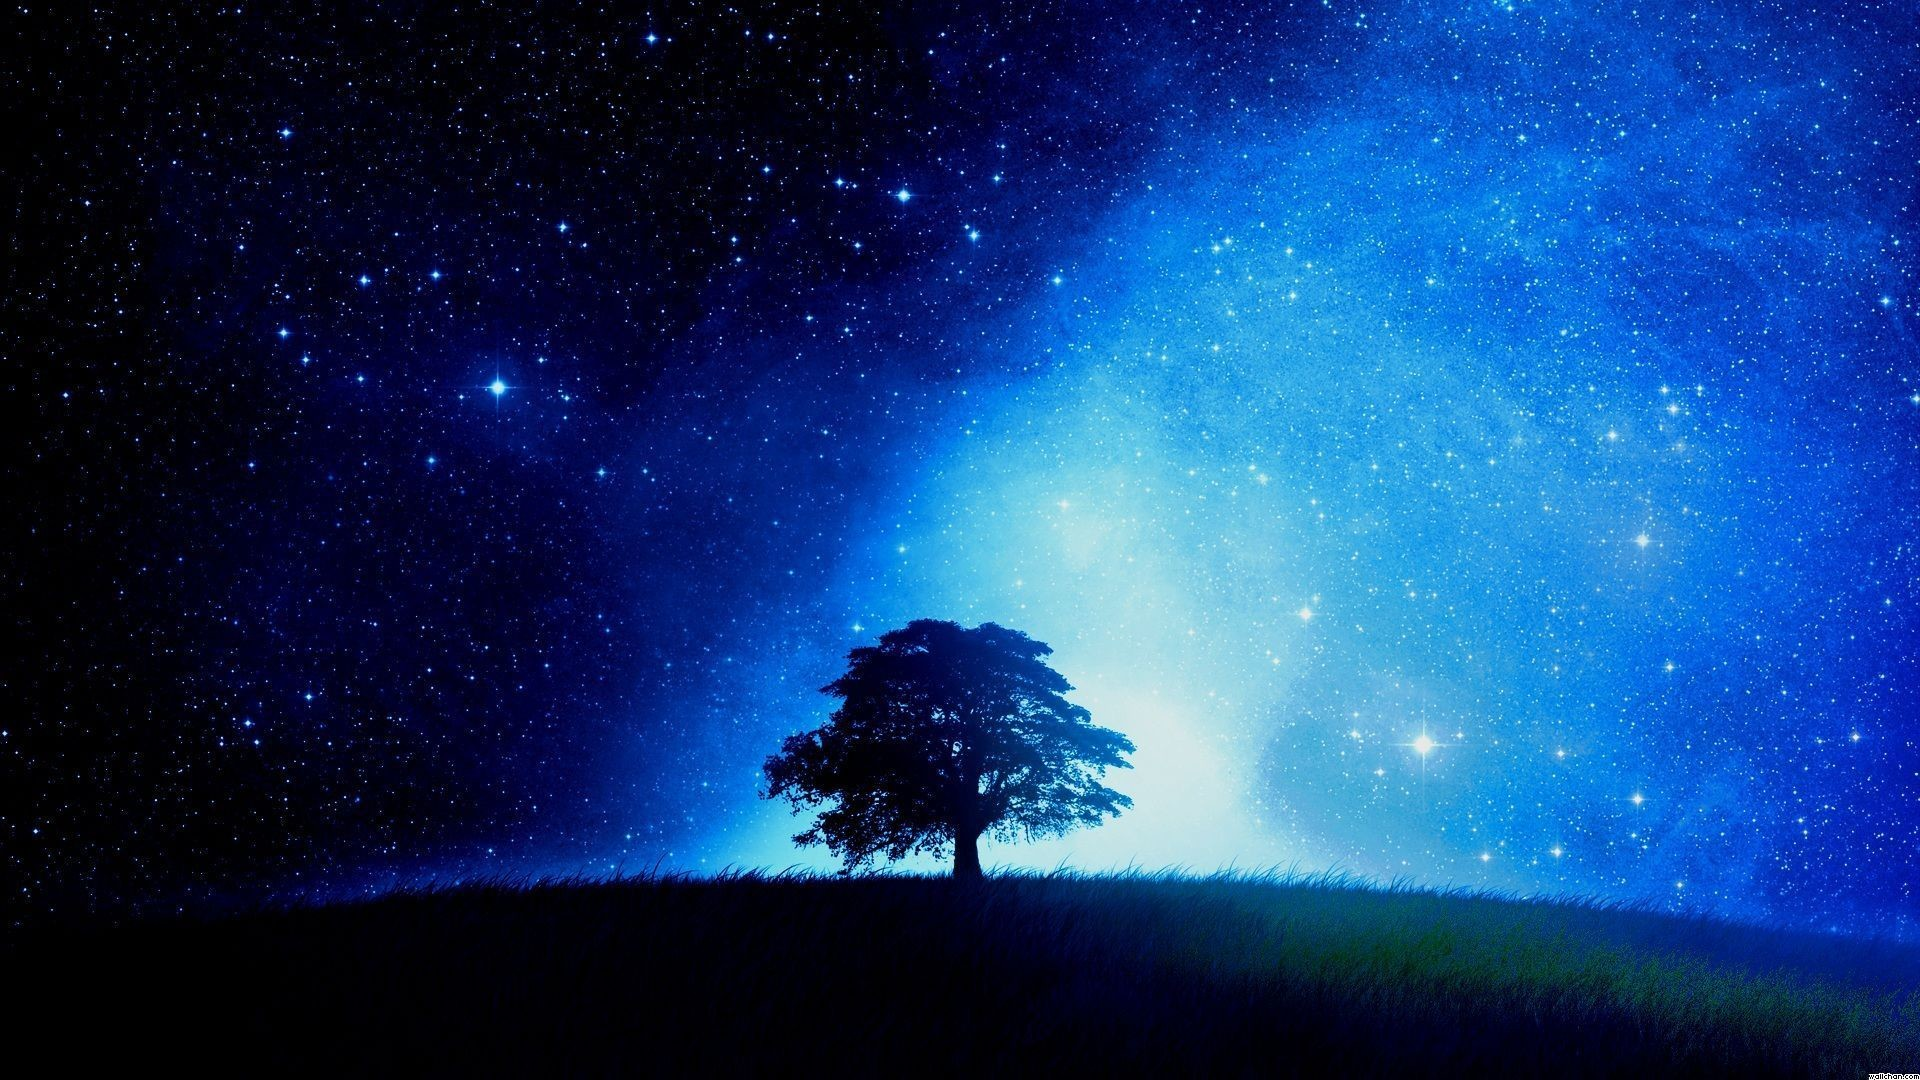 Night Sky Wallpaper For Free Android Places to Visit Pinterest 1920×1080  Blue Night Sky